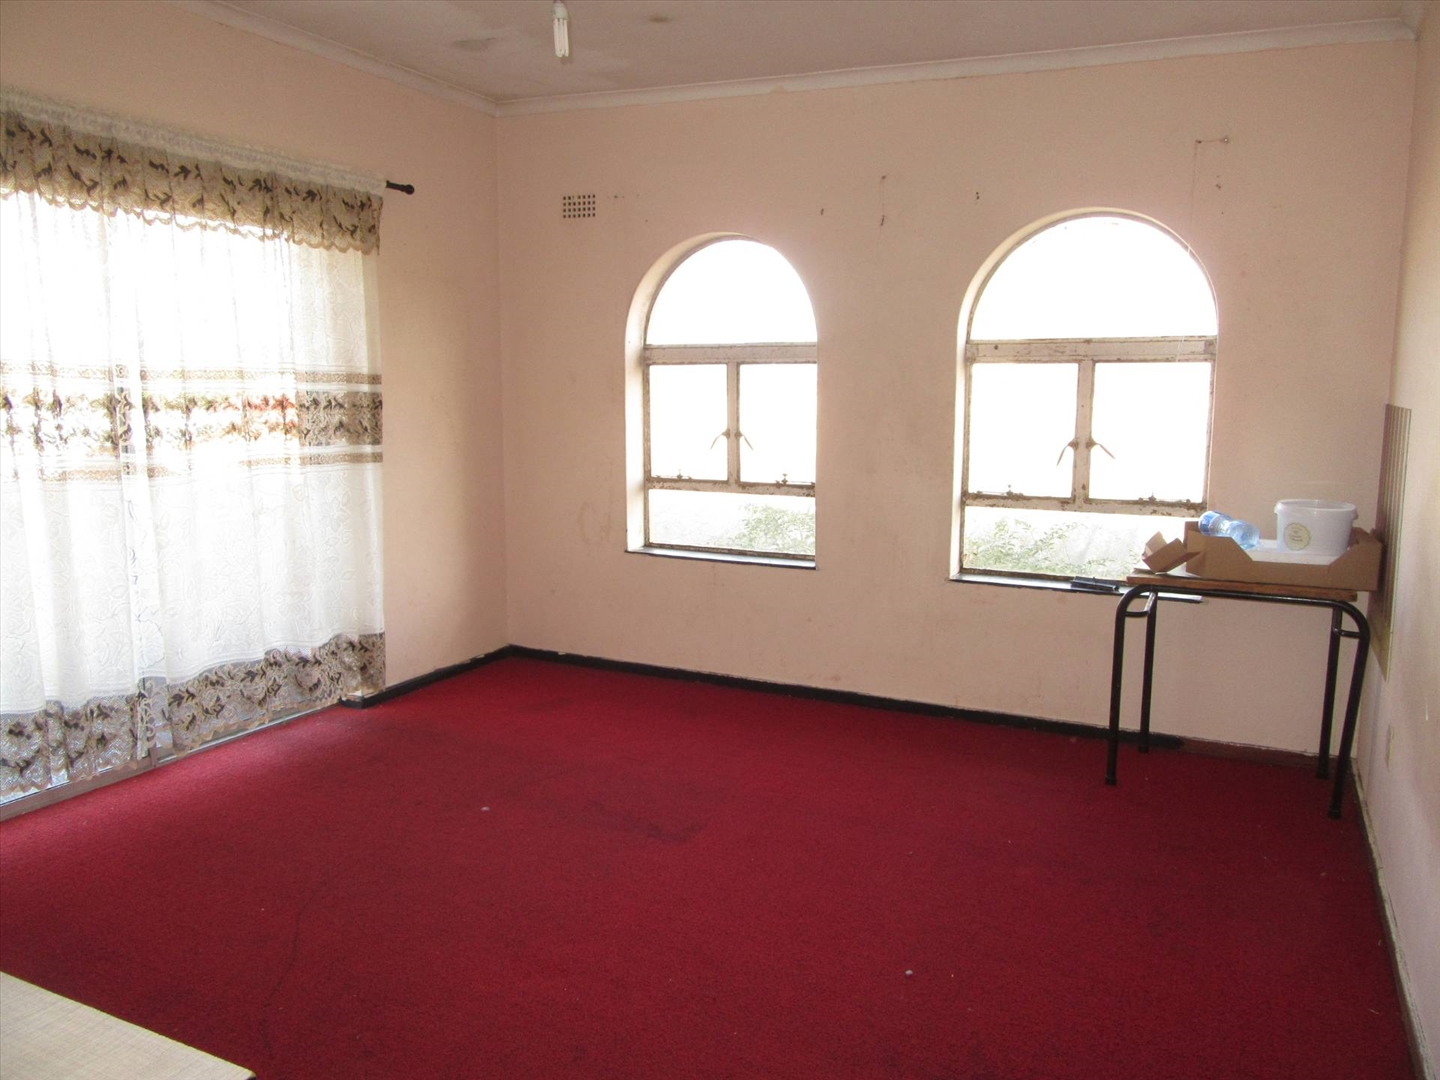 House For Sale in Sarepta